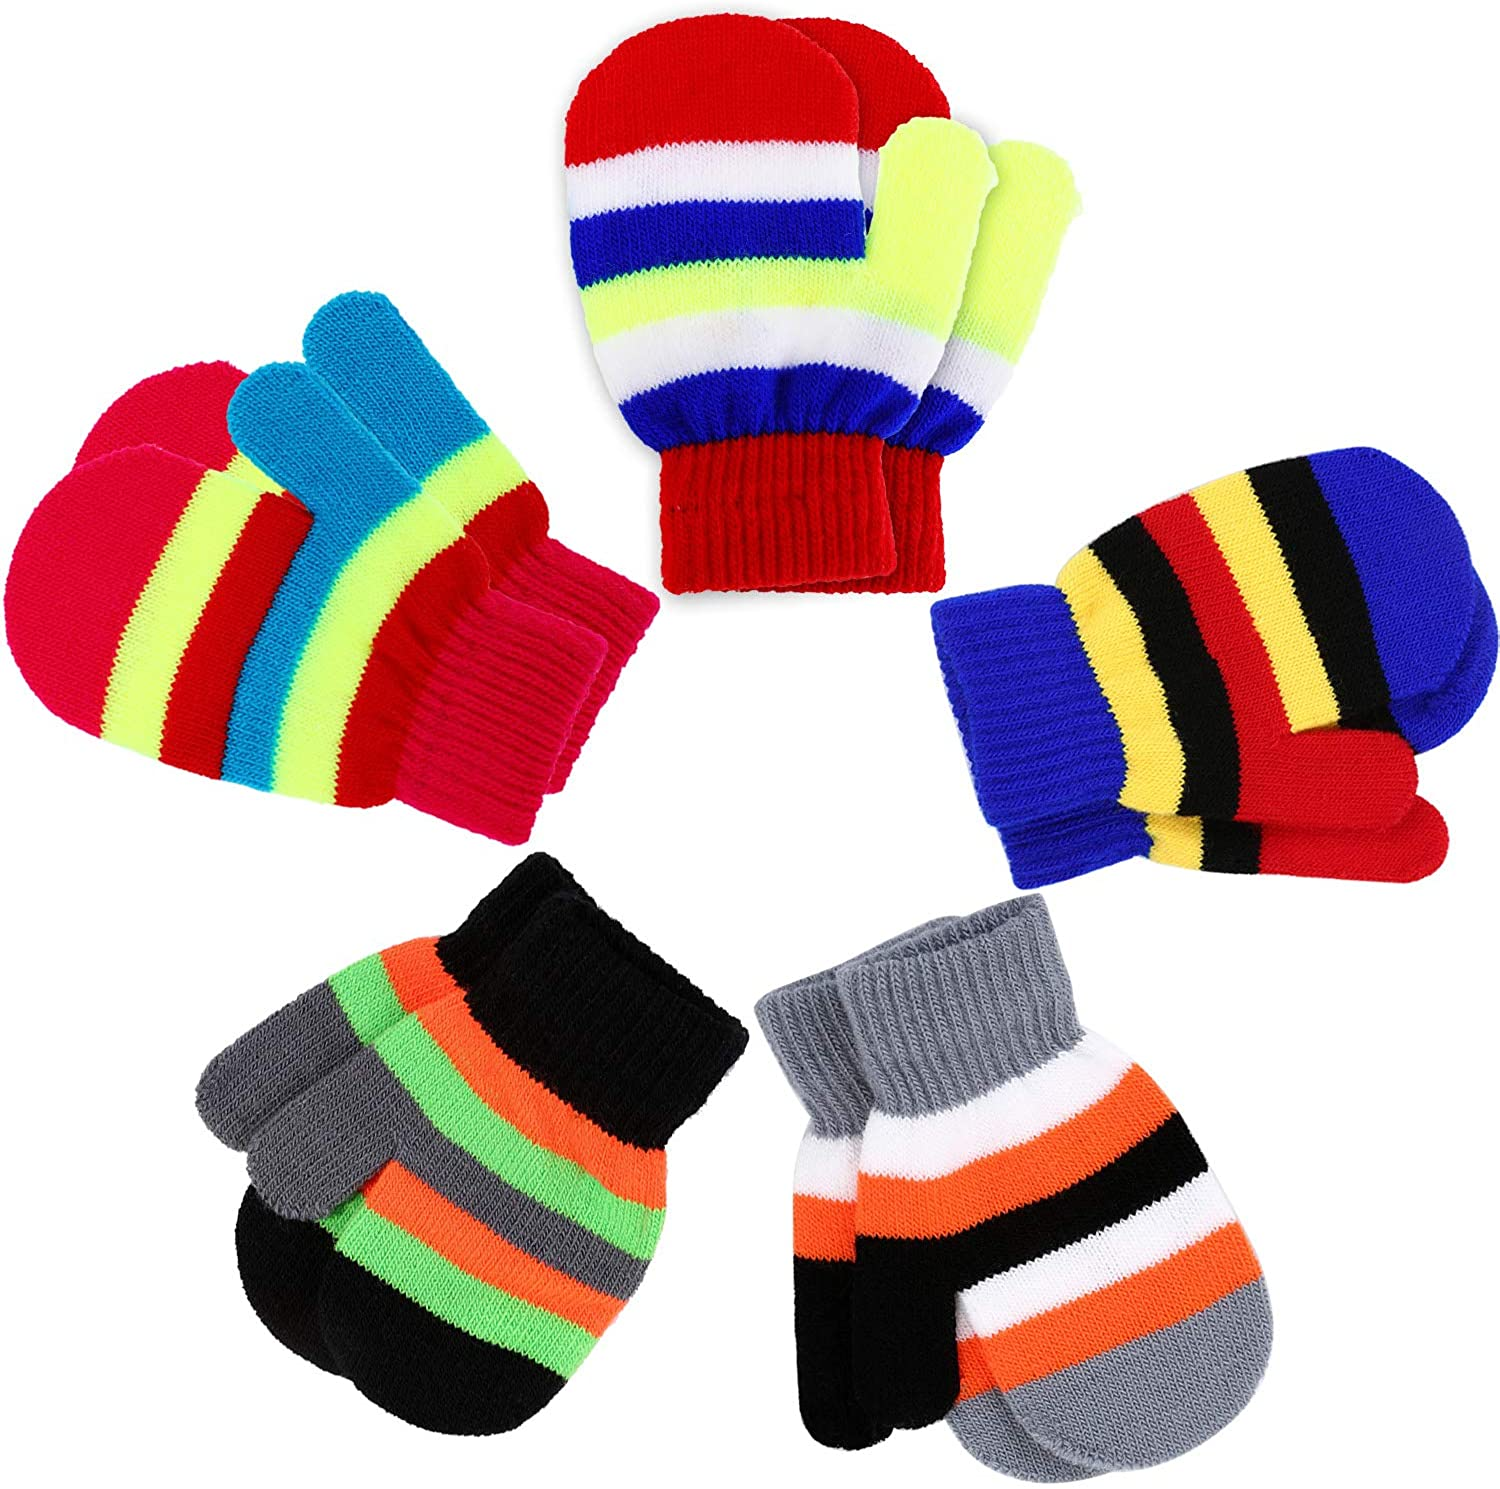 Boao 5 Pairs Stretch Full Finger Mittens Knitted Gloves Winter Warm Kid Gloves for Baby Boys and Girls Supplies (Color Set 6, 1-4 Years Size)